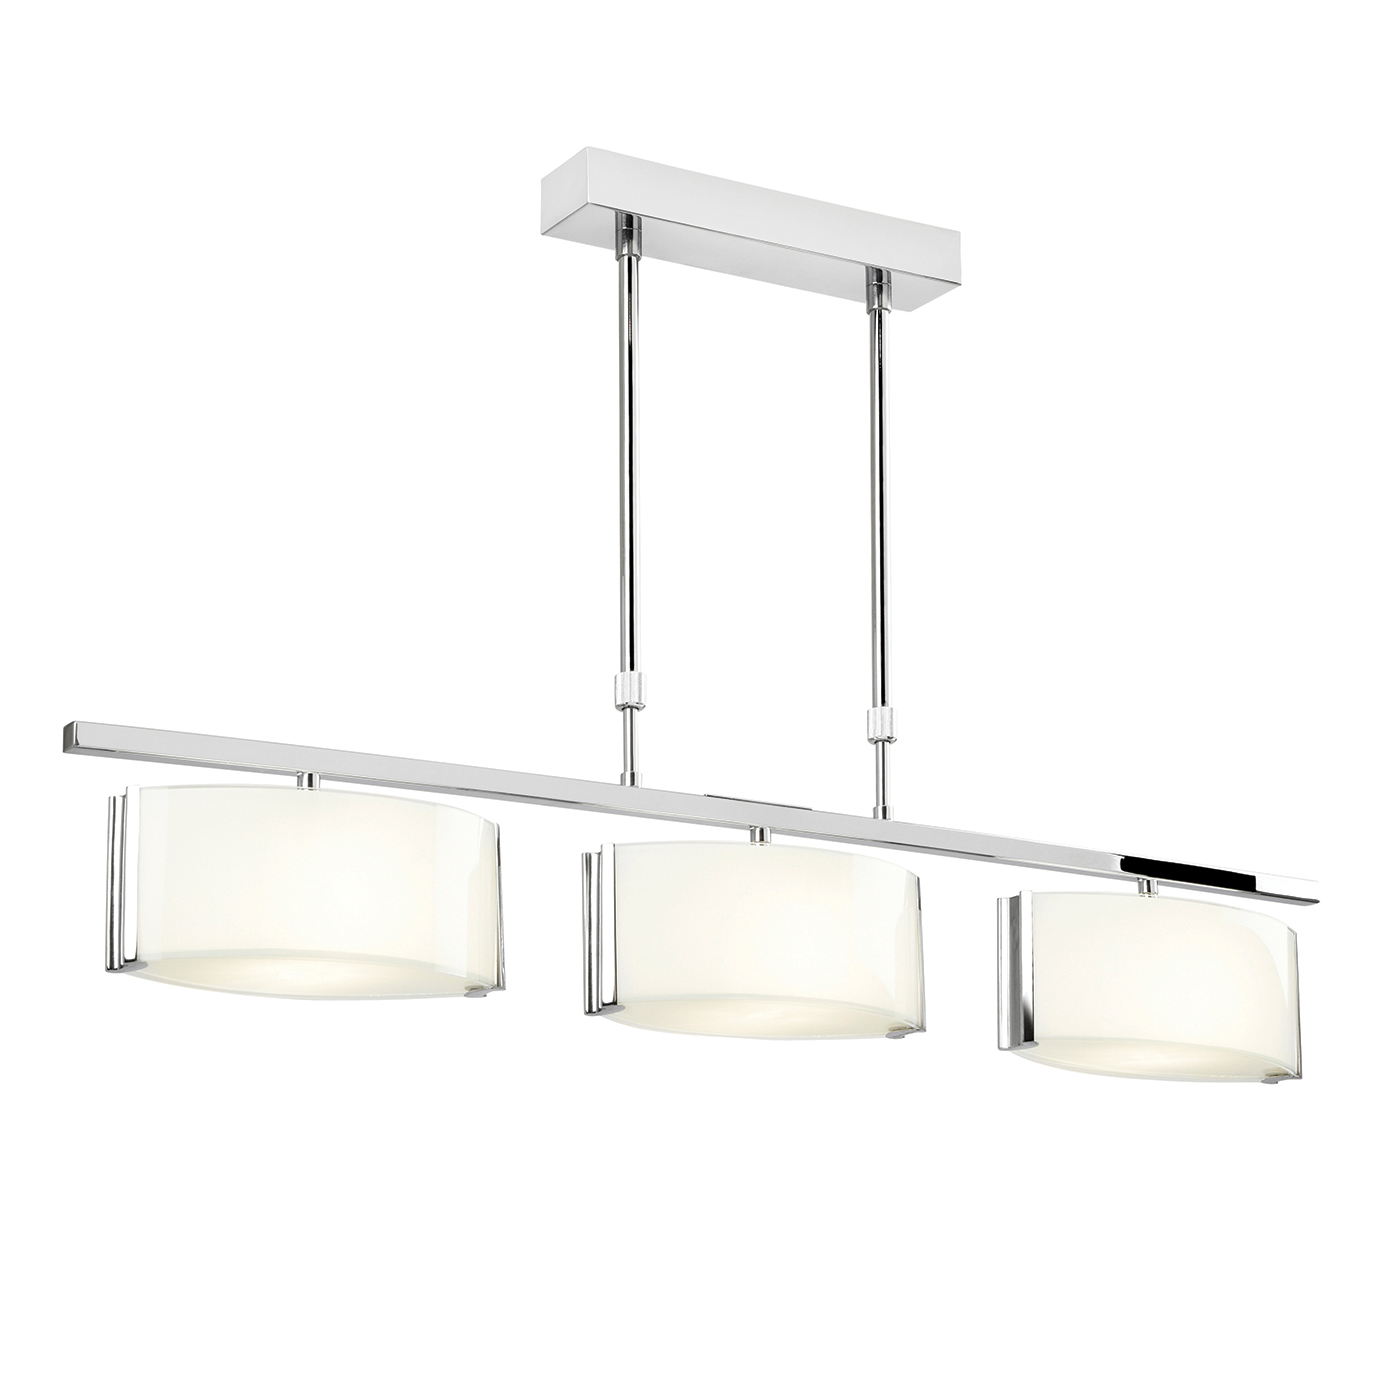 Endon Clef ceiling light bar semi flush 3x 33W Chrome effect & gloss white glass Thumbnail 1